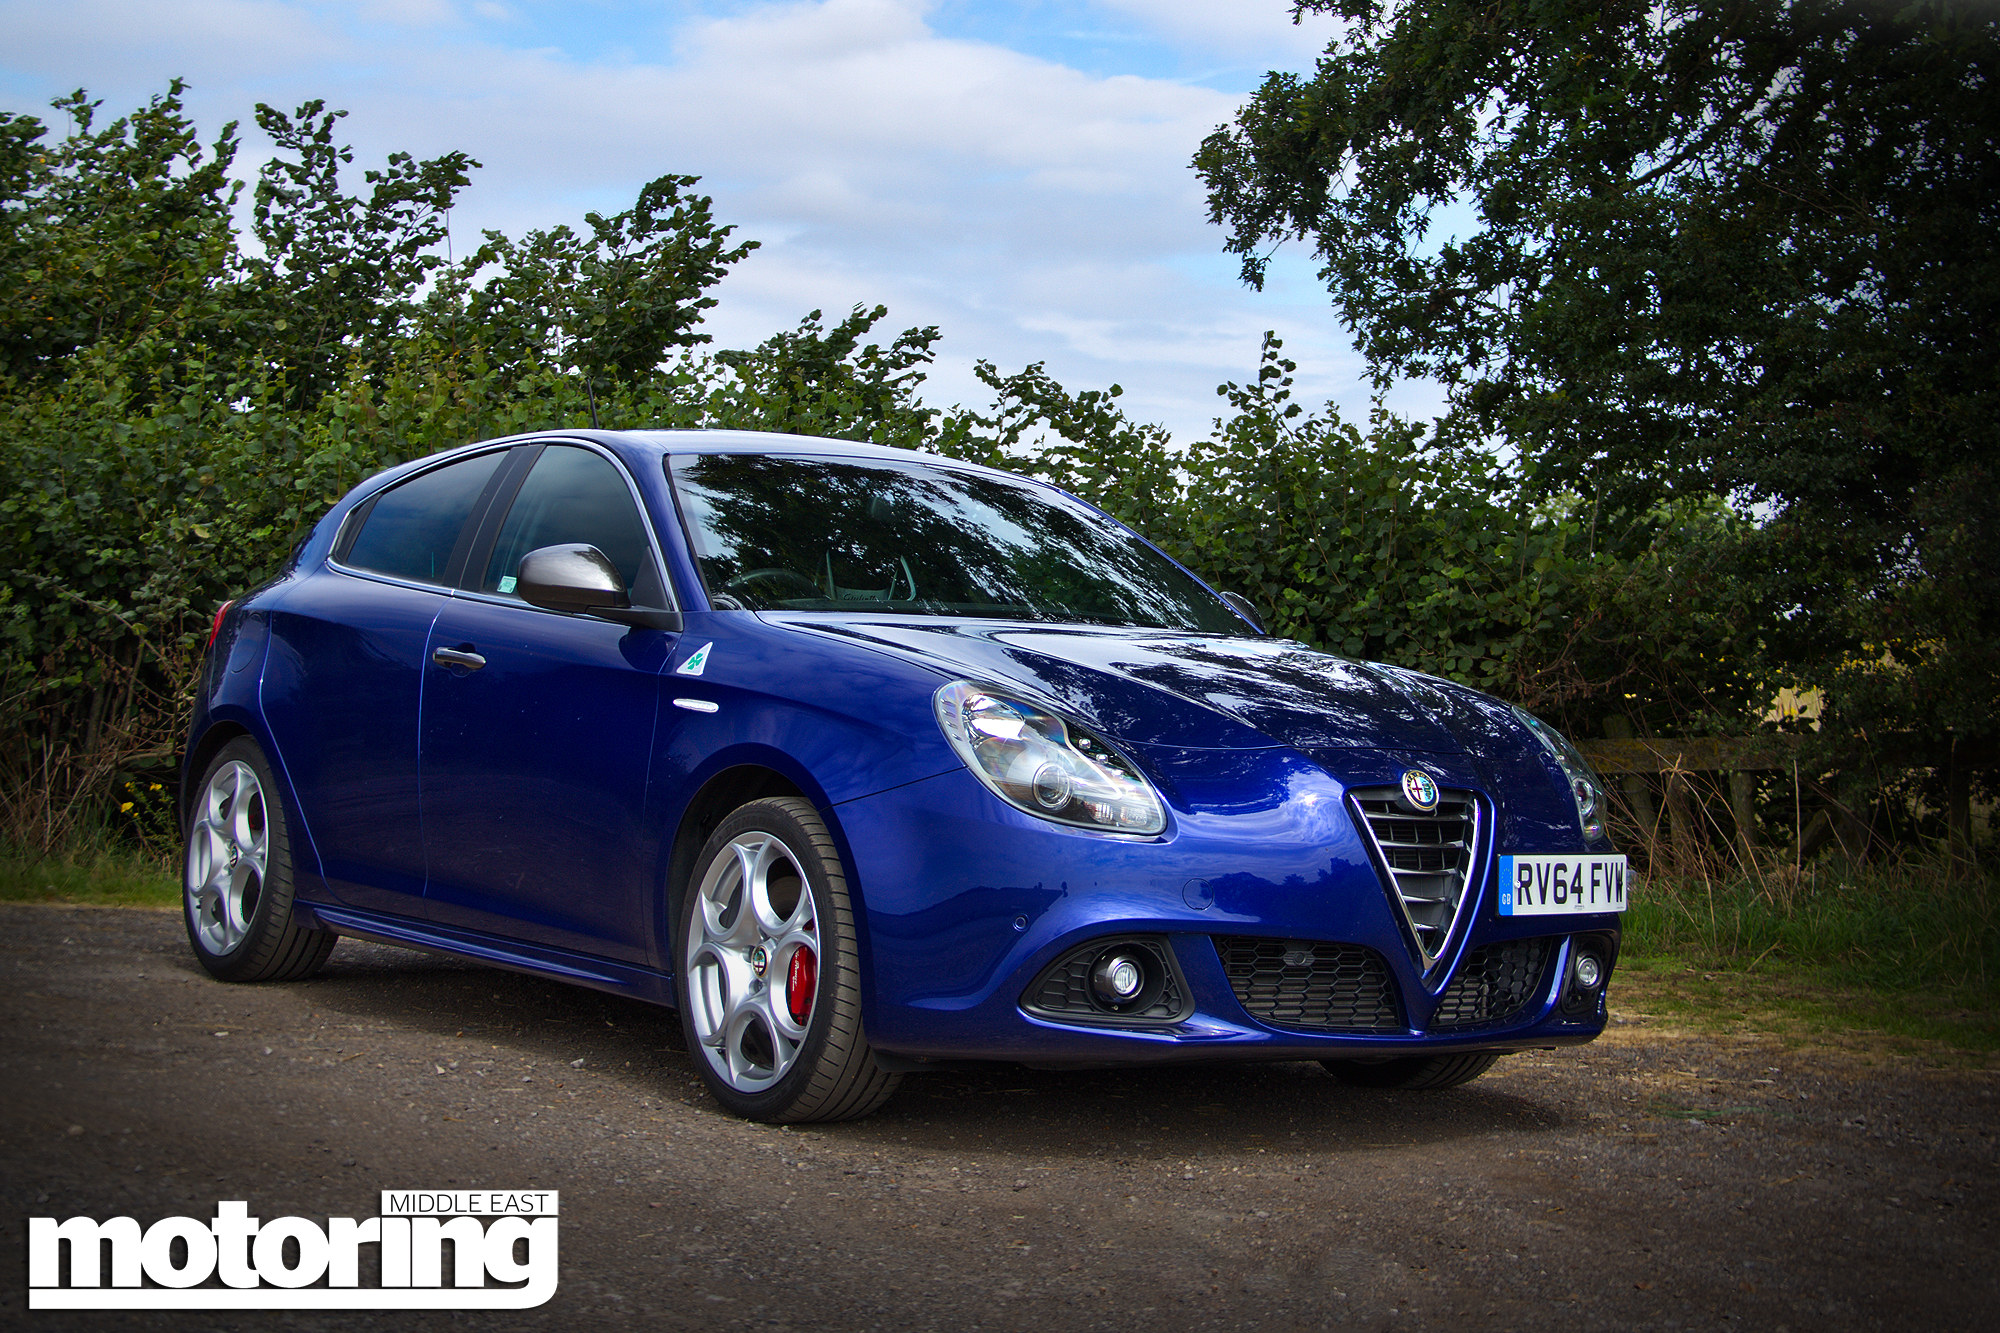 alfa romeo giulietta qv reviewmotoring middle east car. Black Bedroom Furniture Sets. Home Design Ideas